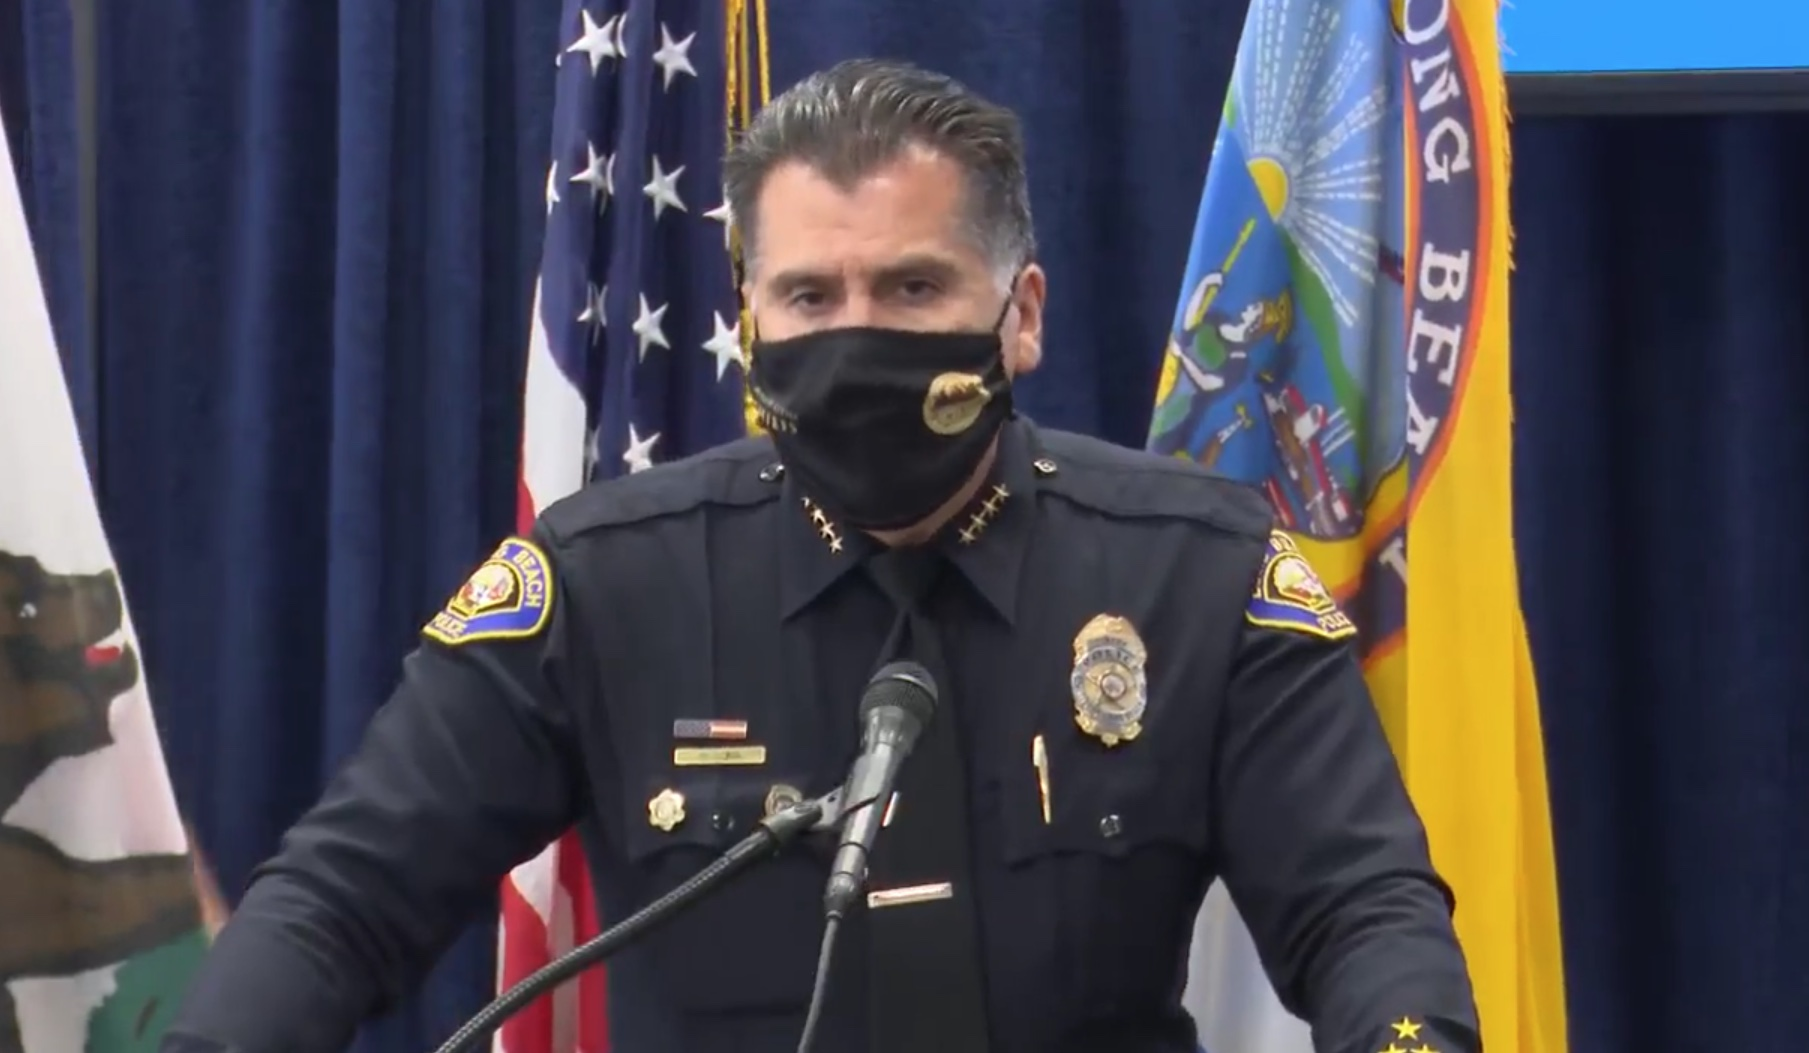 Long Beach Police Chief Robert Luna announces to members of the press that an arrest was made in connection to a shooting last month that left two people dead. Luna is pictured here on Saturday, Sept. 18, 2021.